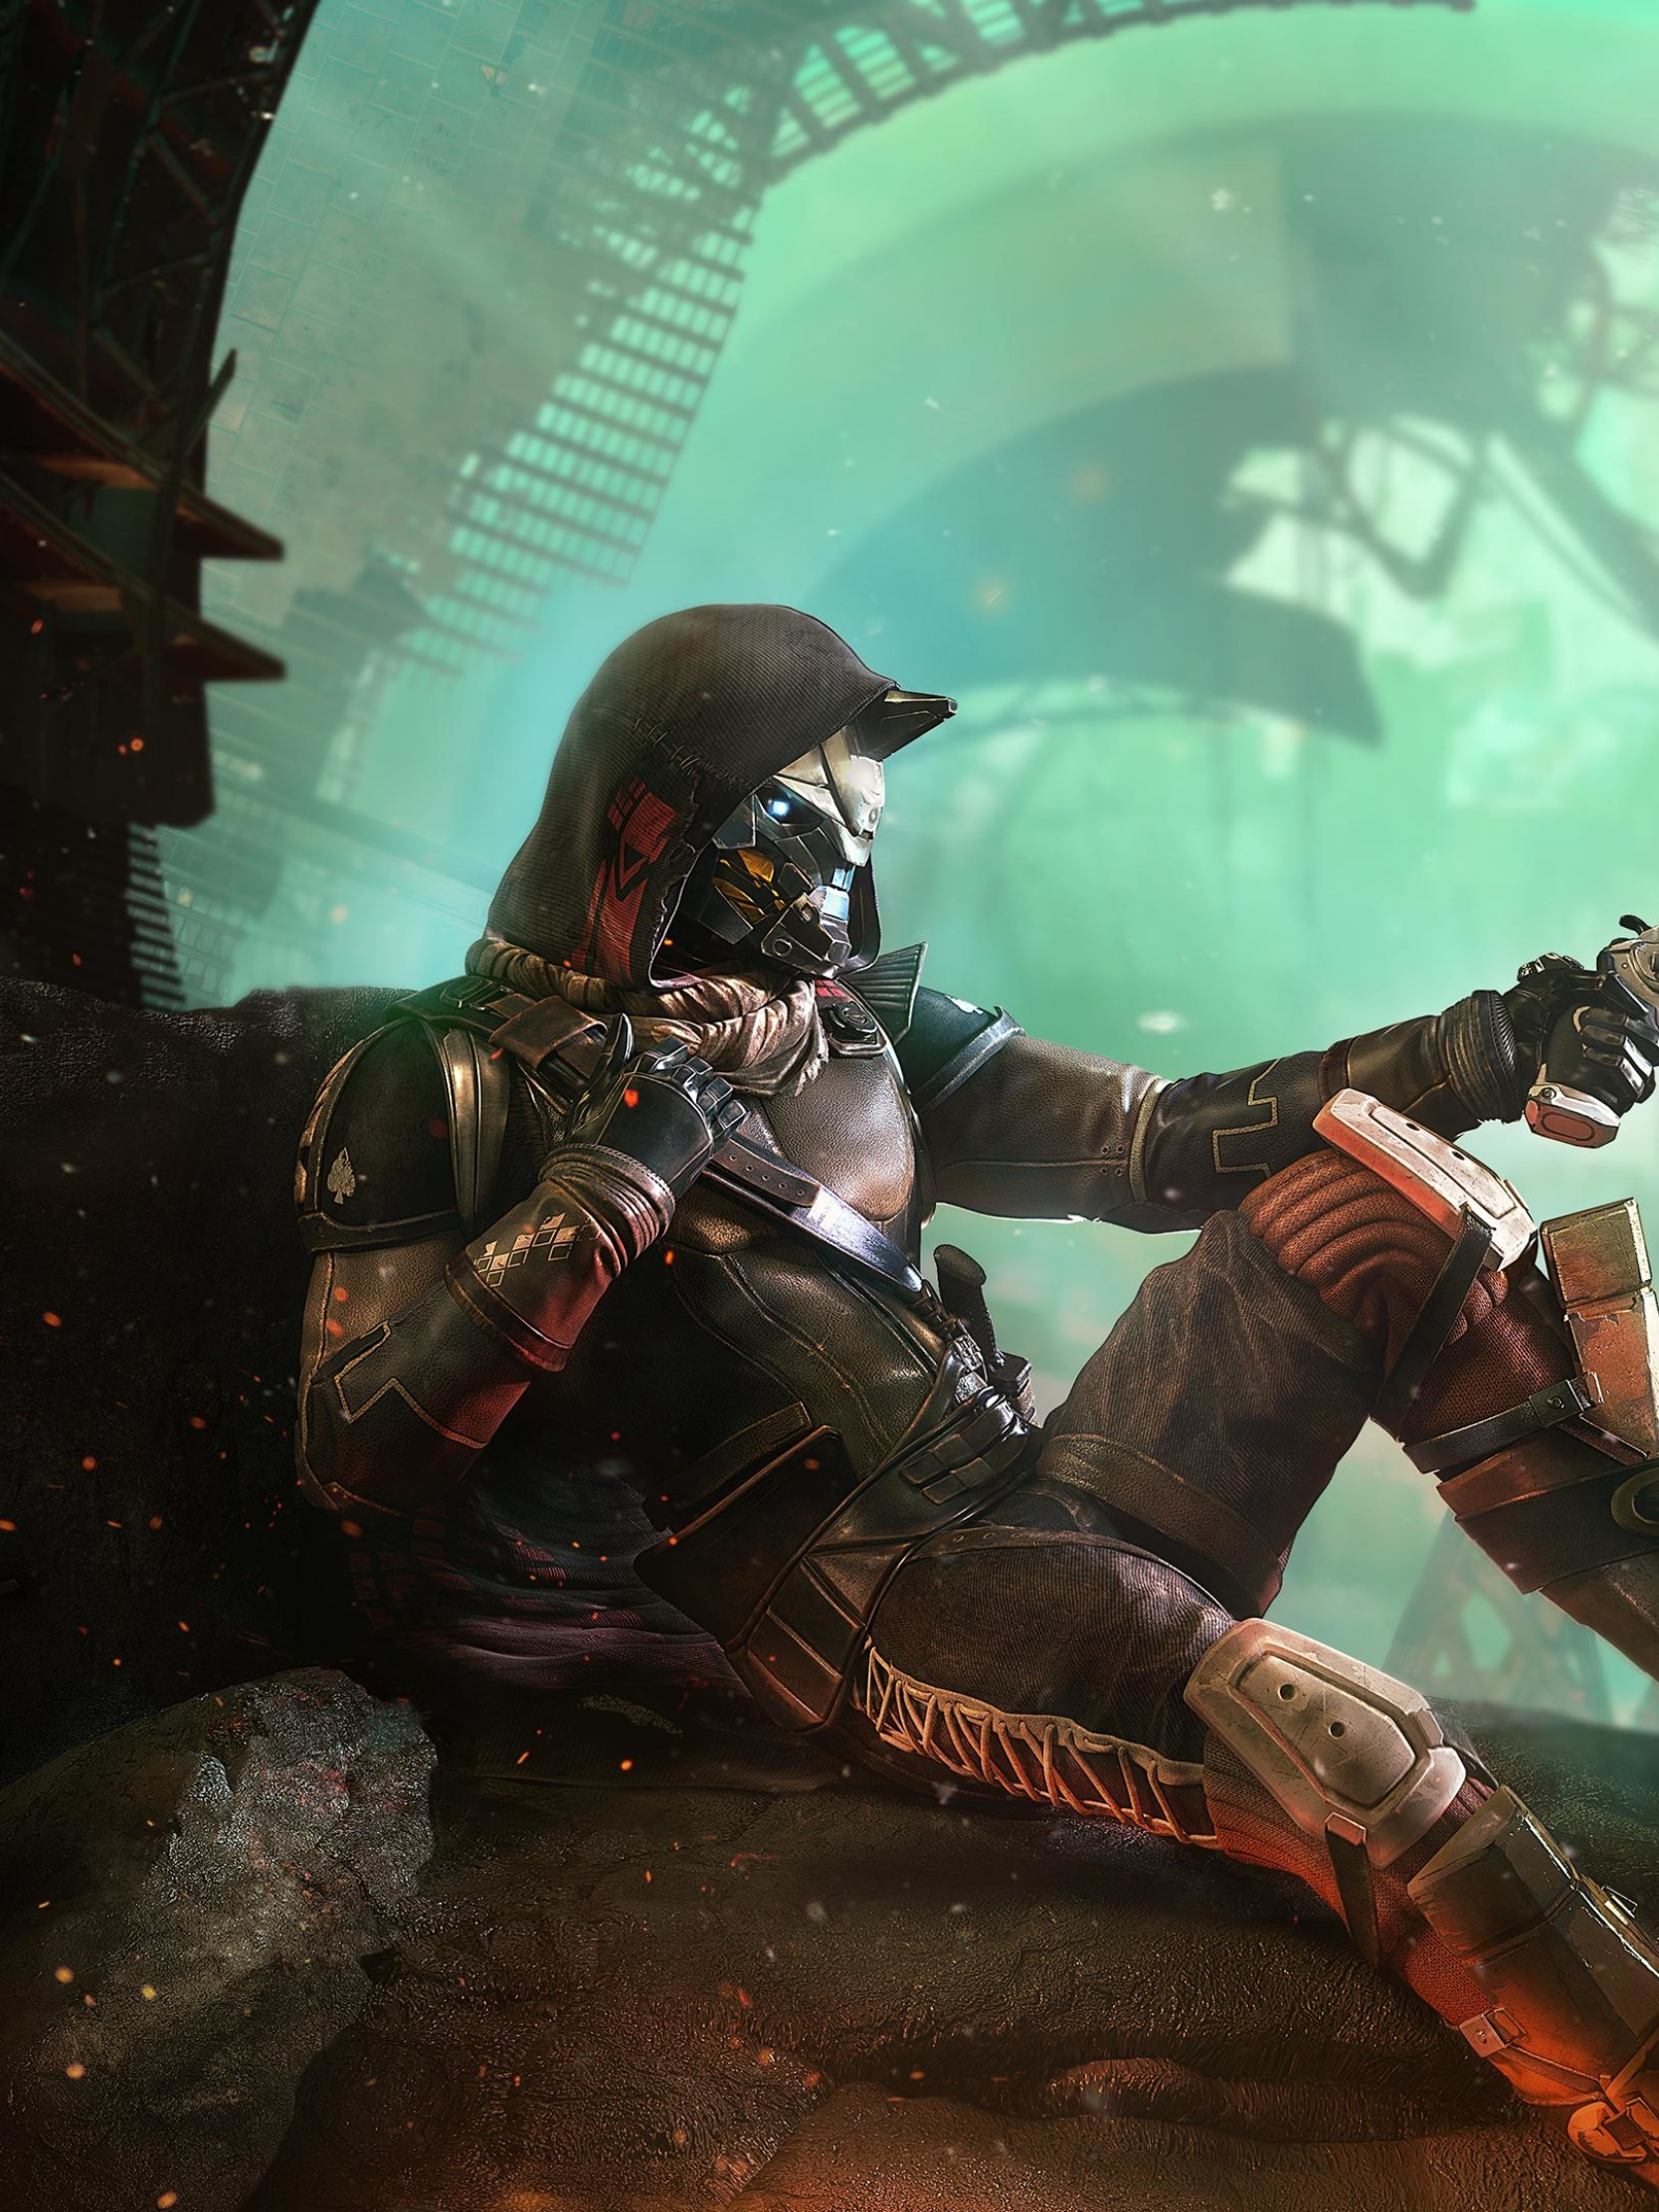 1668x2224 Destiny 2 Cayde 6 1668x2224 Resolution Wallpaper Hd Games 4k Wallpapers Images Photos And Background